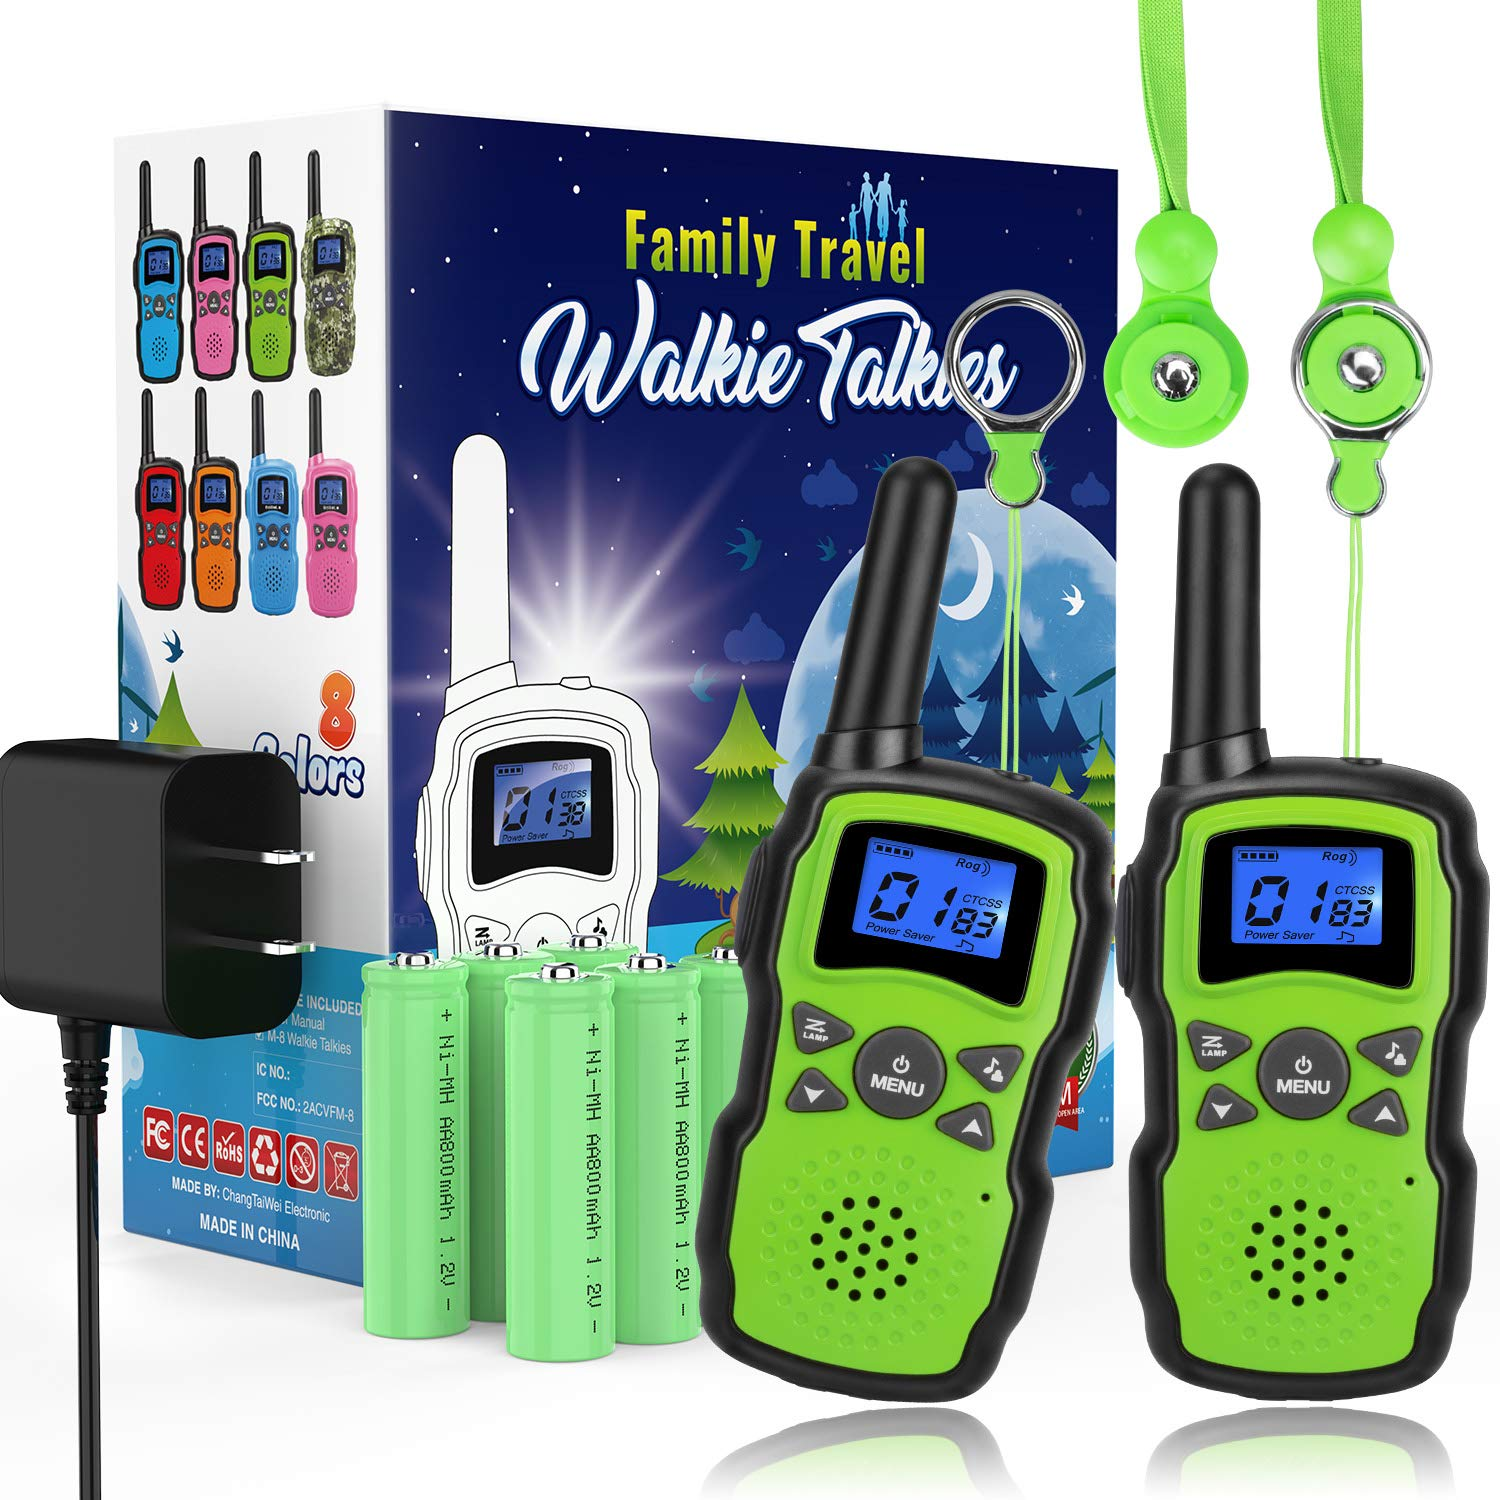 Wishouse 2 Rechargeable Walkie Talkies for Kids with Charger Battery, Two Way Radio Family Talkabout for Adult Cruise Ship Long Range, Outdoor Camping Hiking Fun Toy Birthday Gift for Girls Boys Green by Wishouse (Image #1)